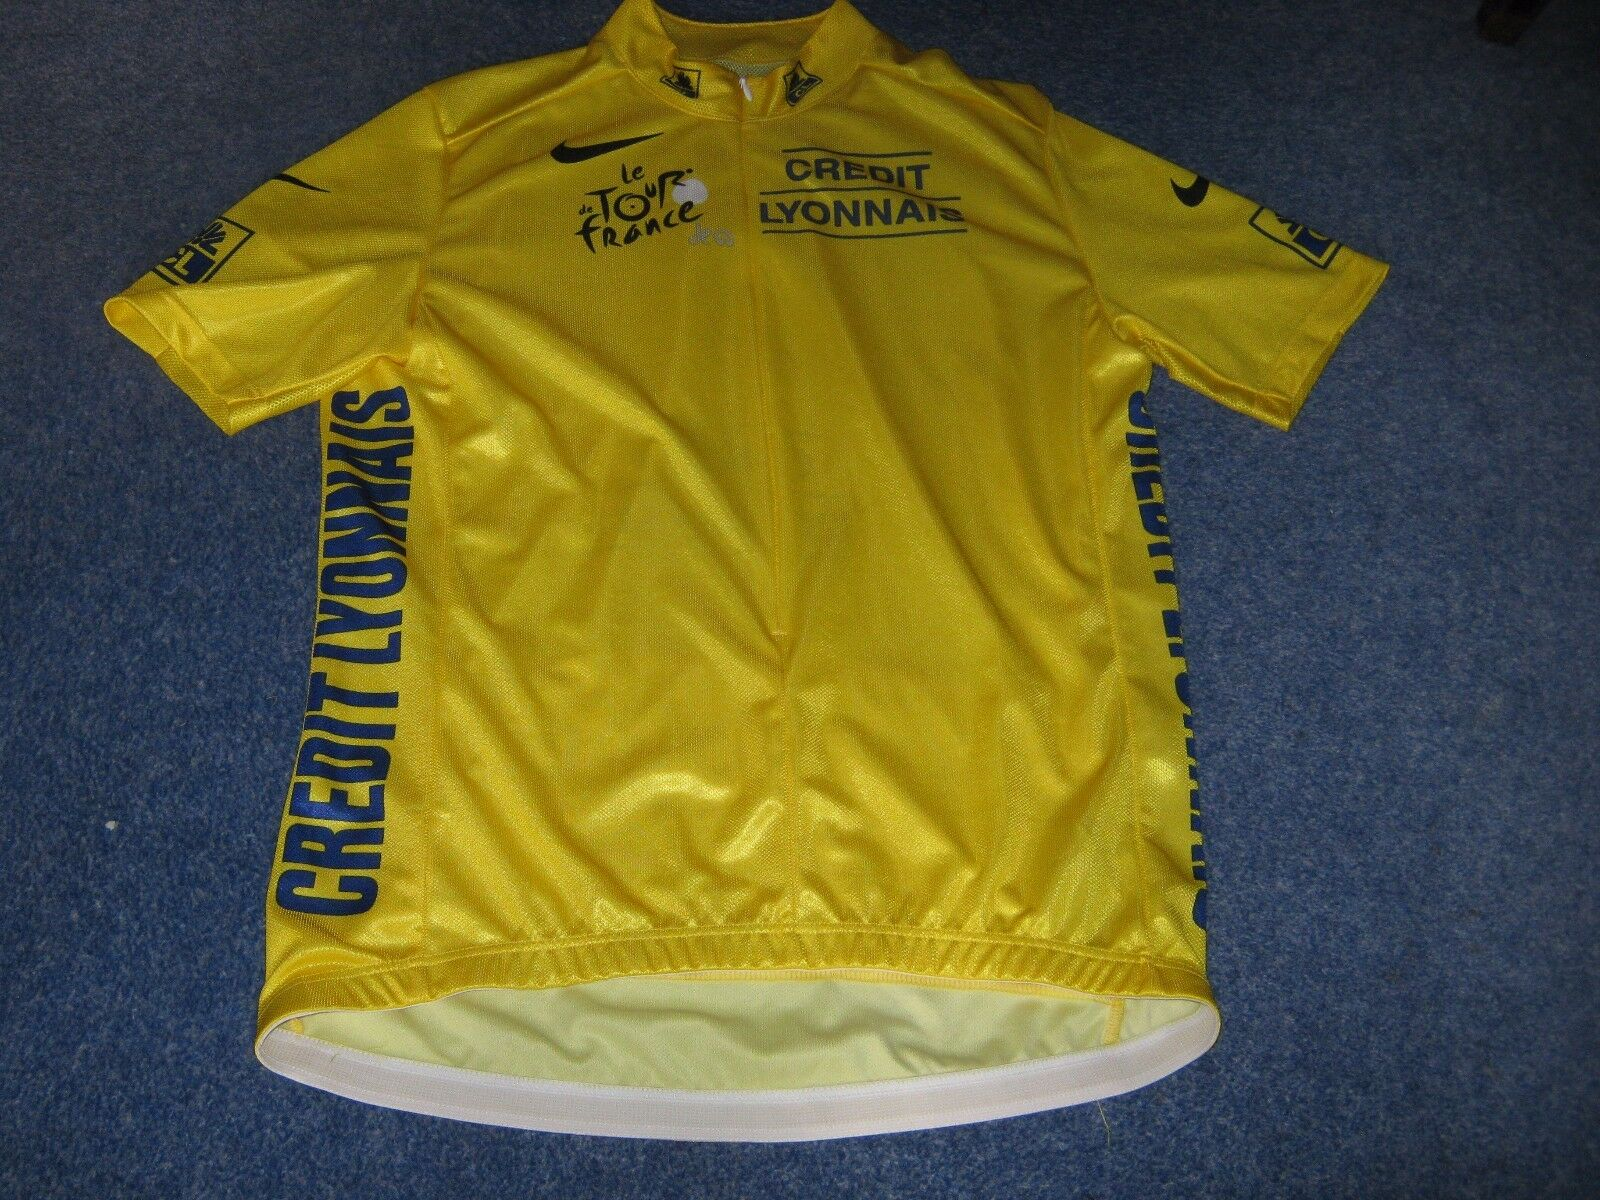 TOUR DE FRANCE 2004 NIKE YELLOW LEADERS CYCLING JERSEY [Small]